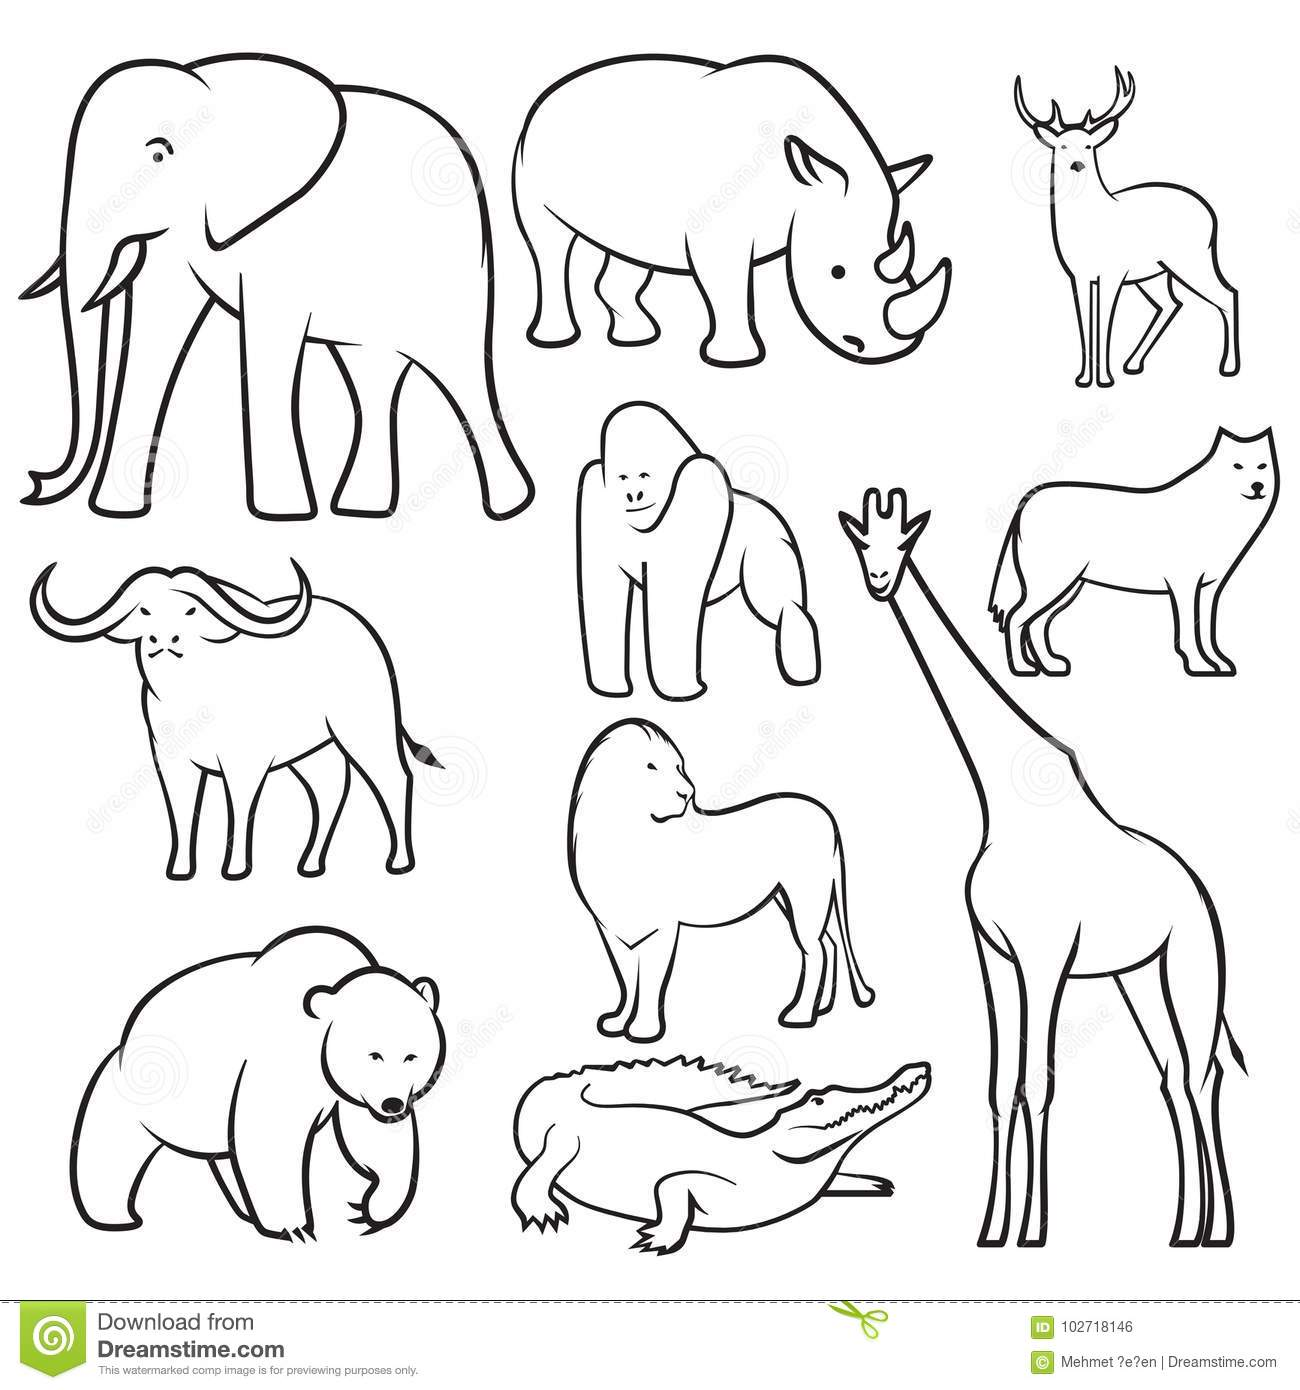 Collection of wild animals sketches